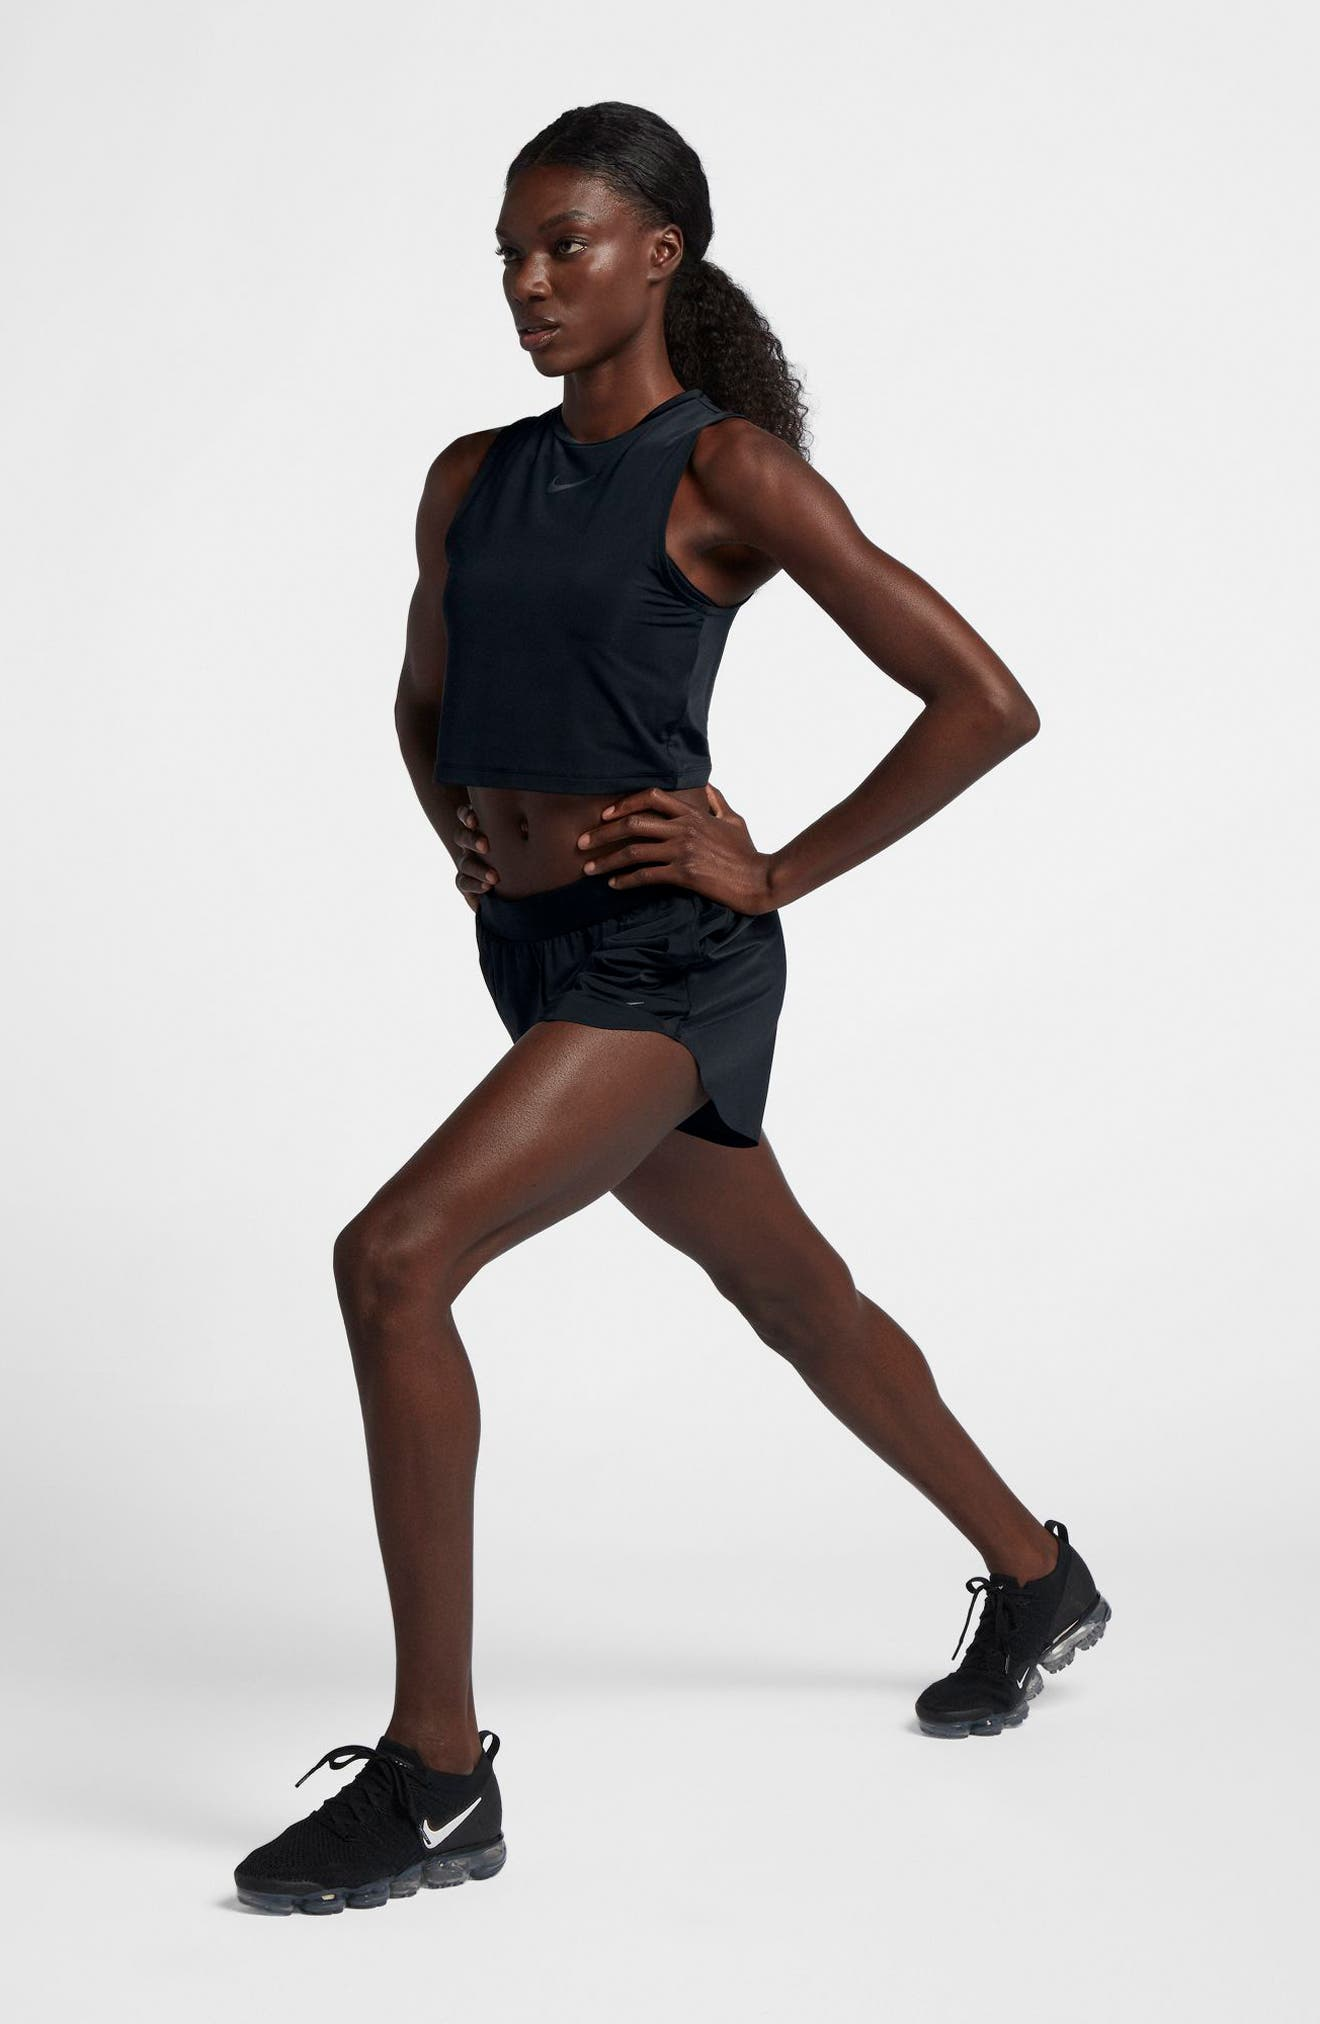 Running Division Women's Cropped Running Top,                             Alternate thumbnail 10, color,                             BLACK/ REFLECT BLACK